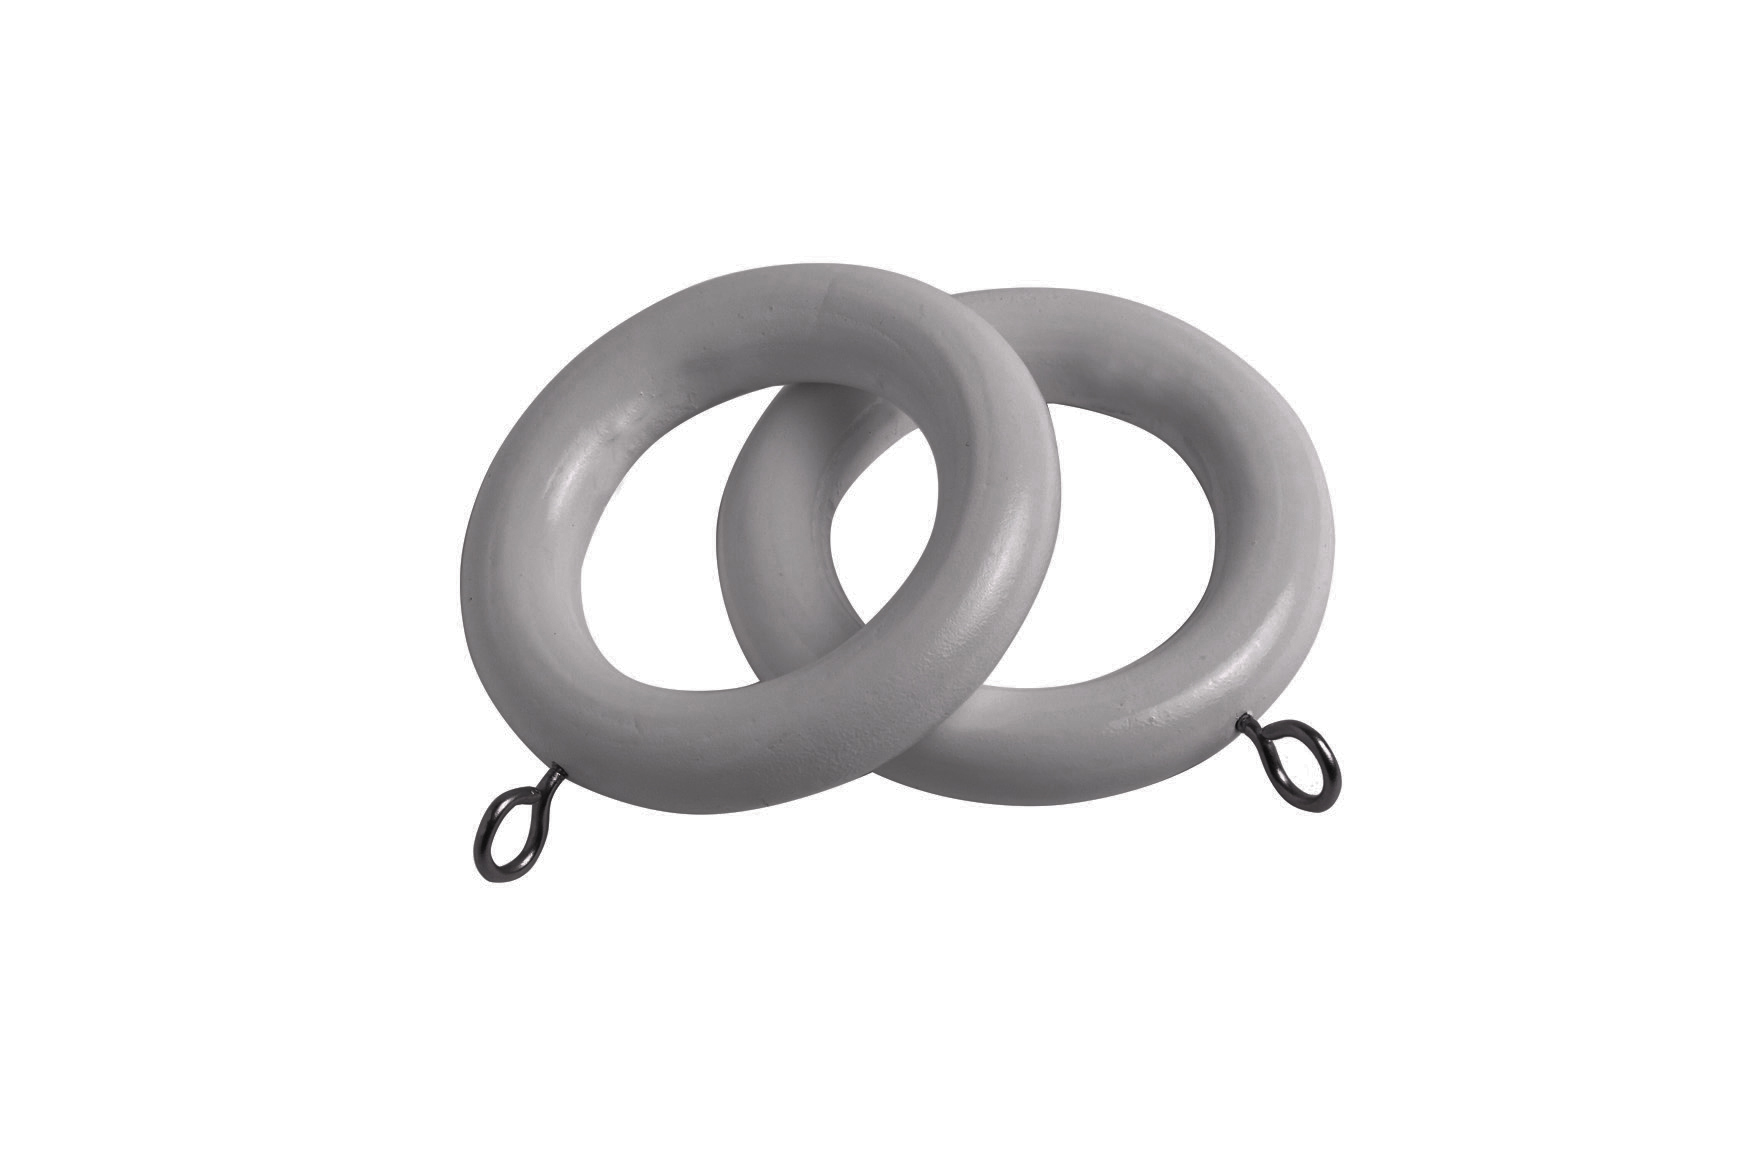 County 28mm Wooden Curtain Rings Light Grey - 4 Pack